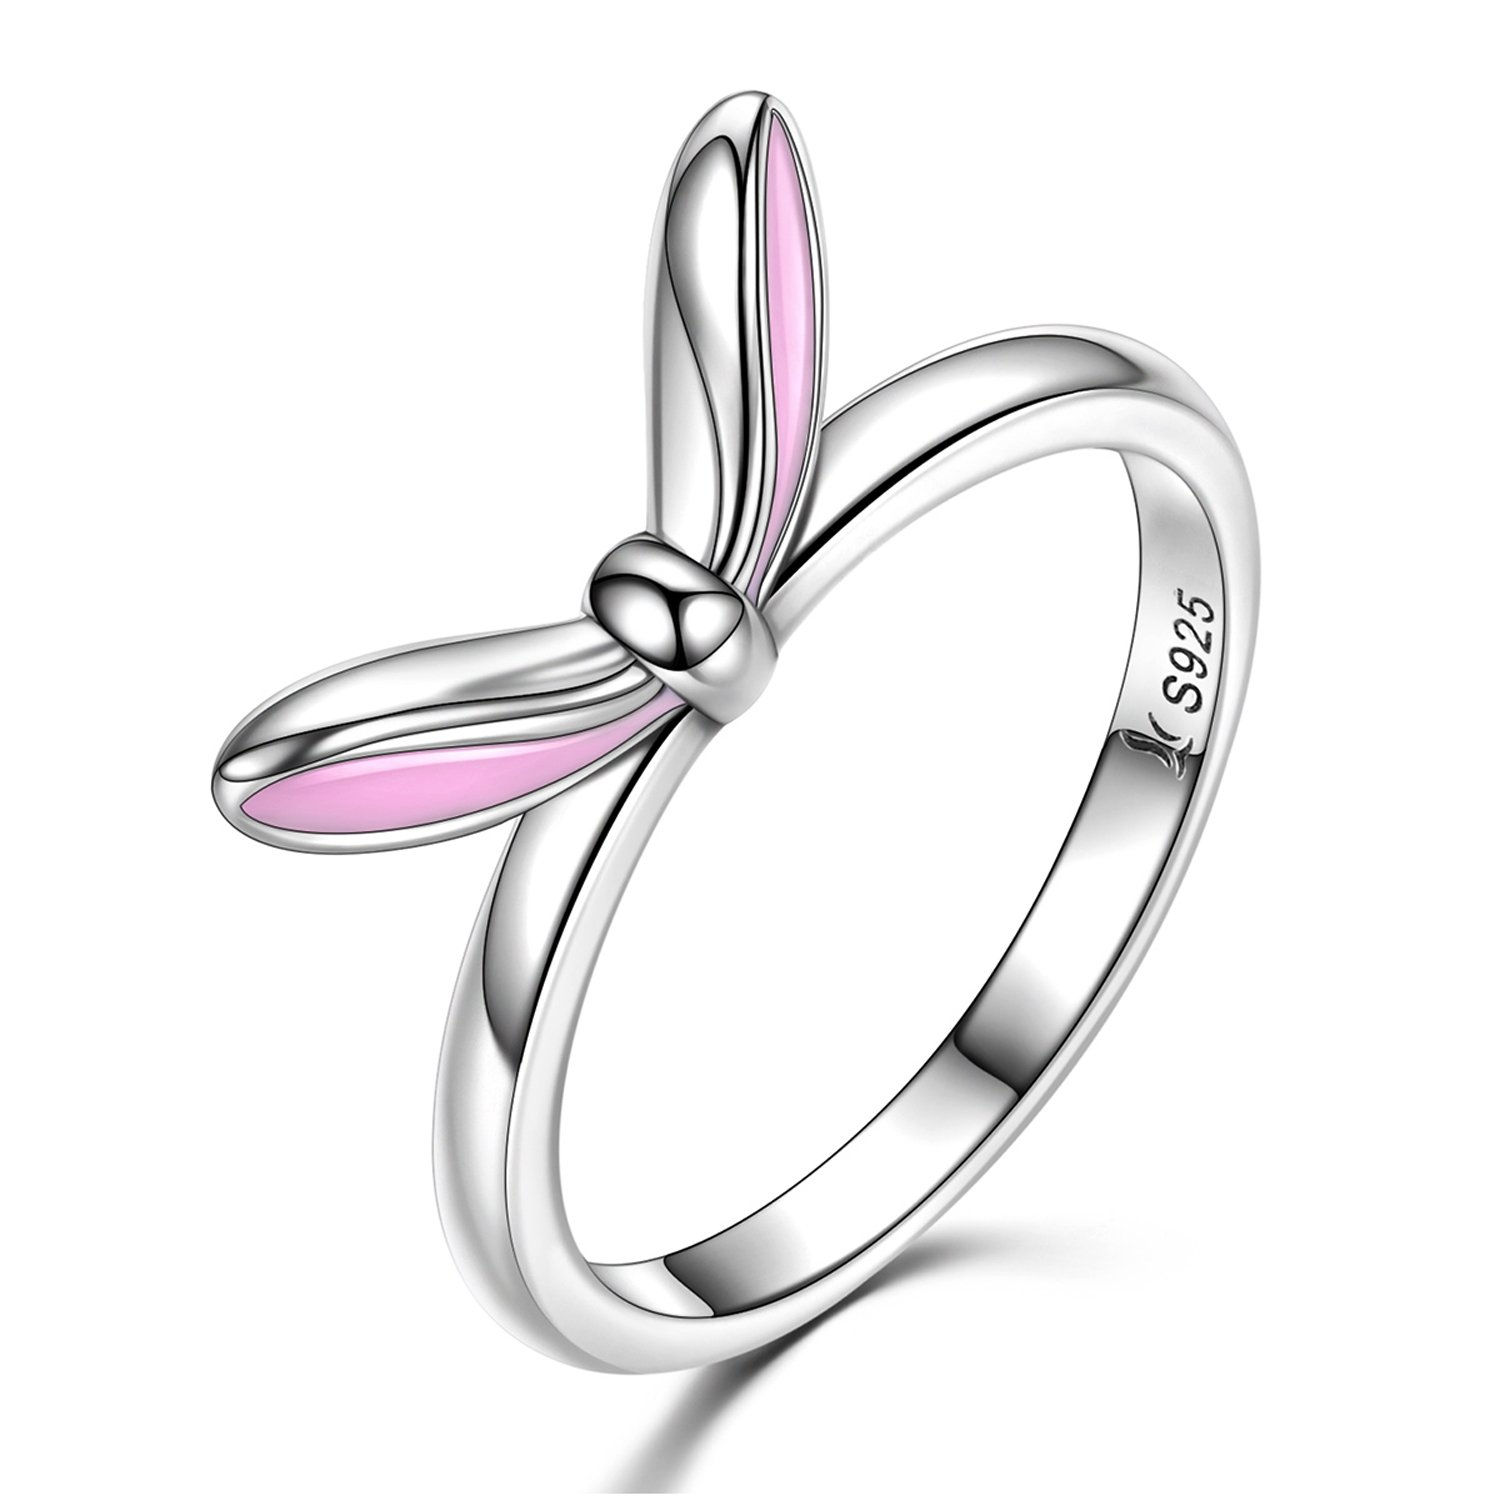 925-Sterling-Silver-Rings-Cute-Rabbit-Bunny-Ears-Rings-for-Women-and-Girls-Mothers-Day-Gifts-Size-6-7-8